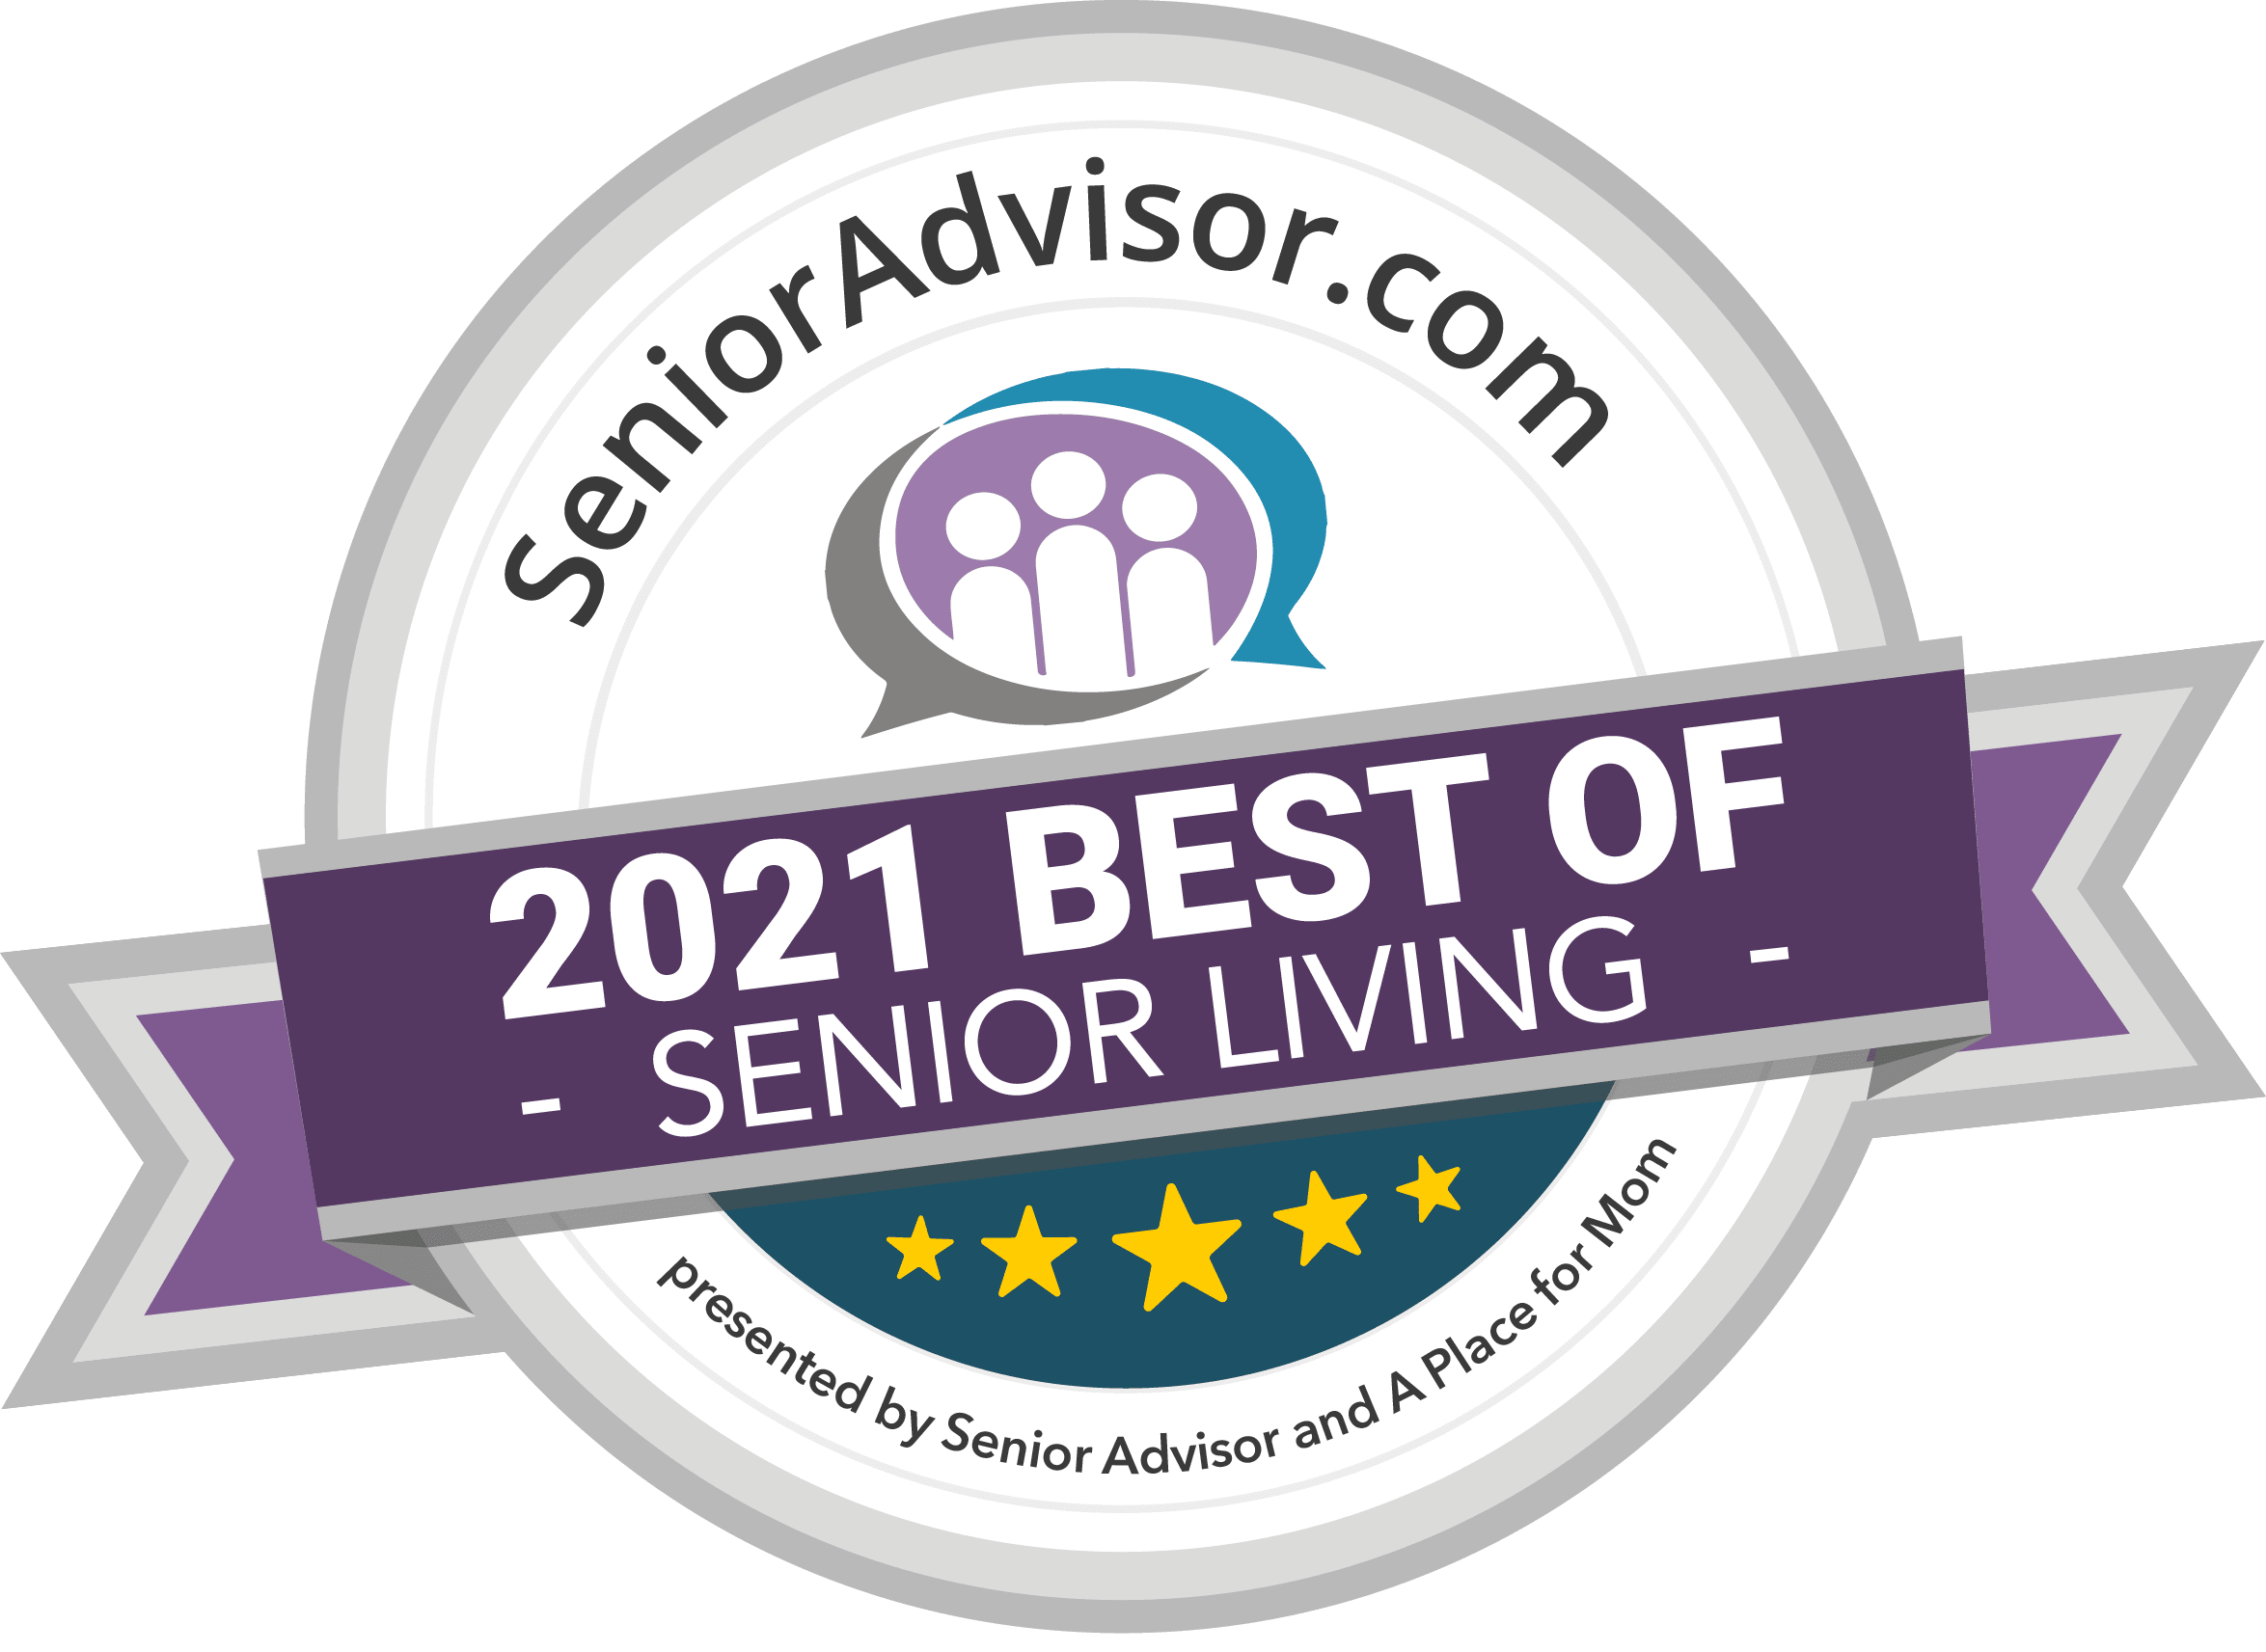 2021 Best of Senior Living